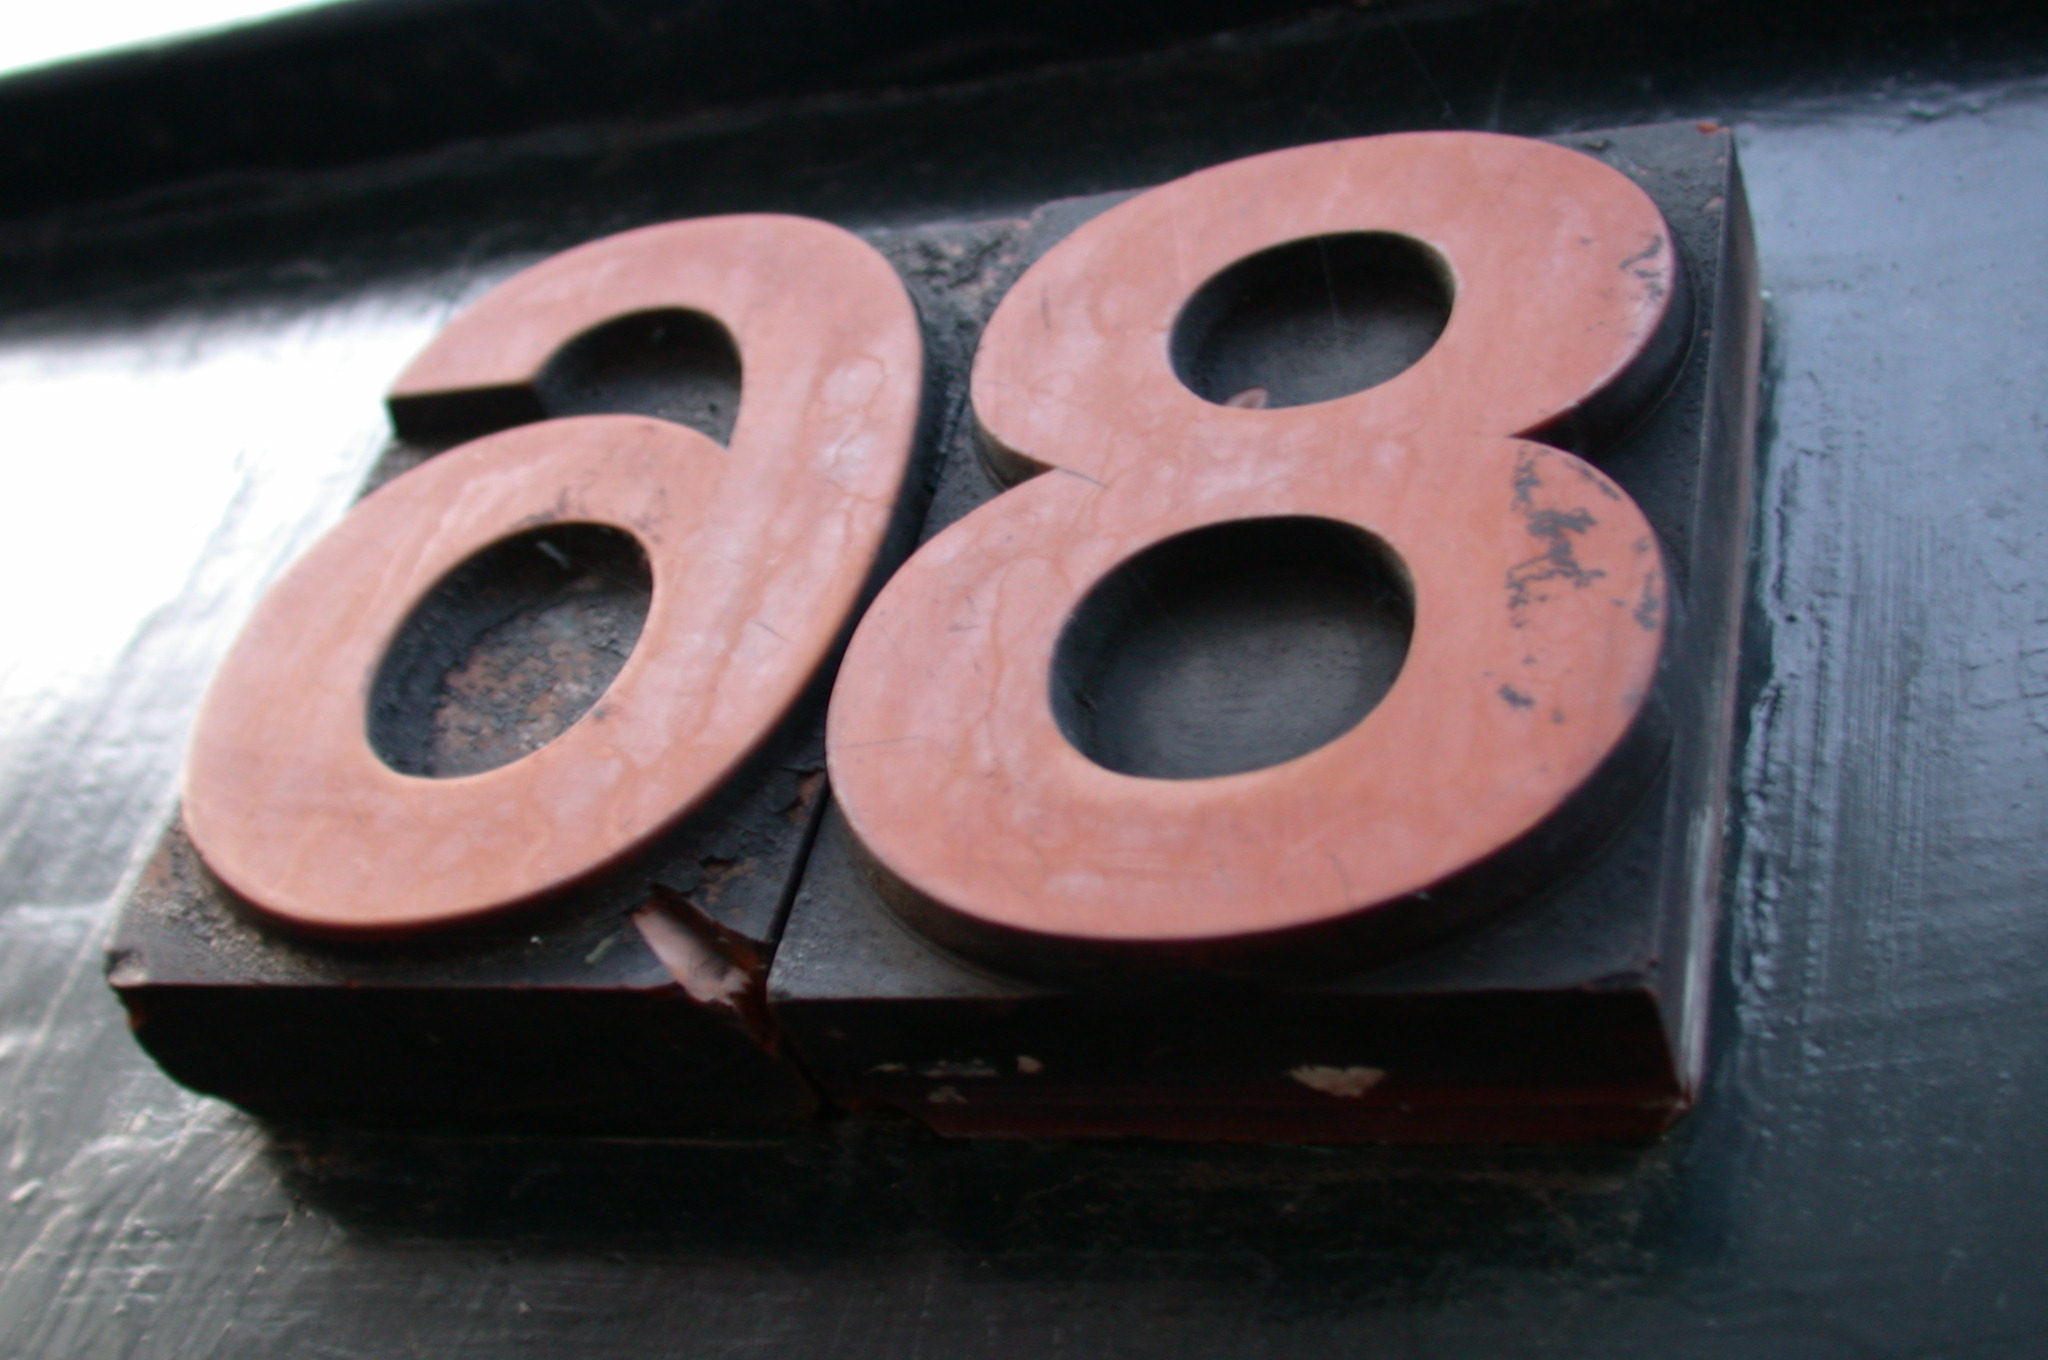 typo typography wood number numbers 8 6 9 red